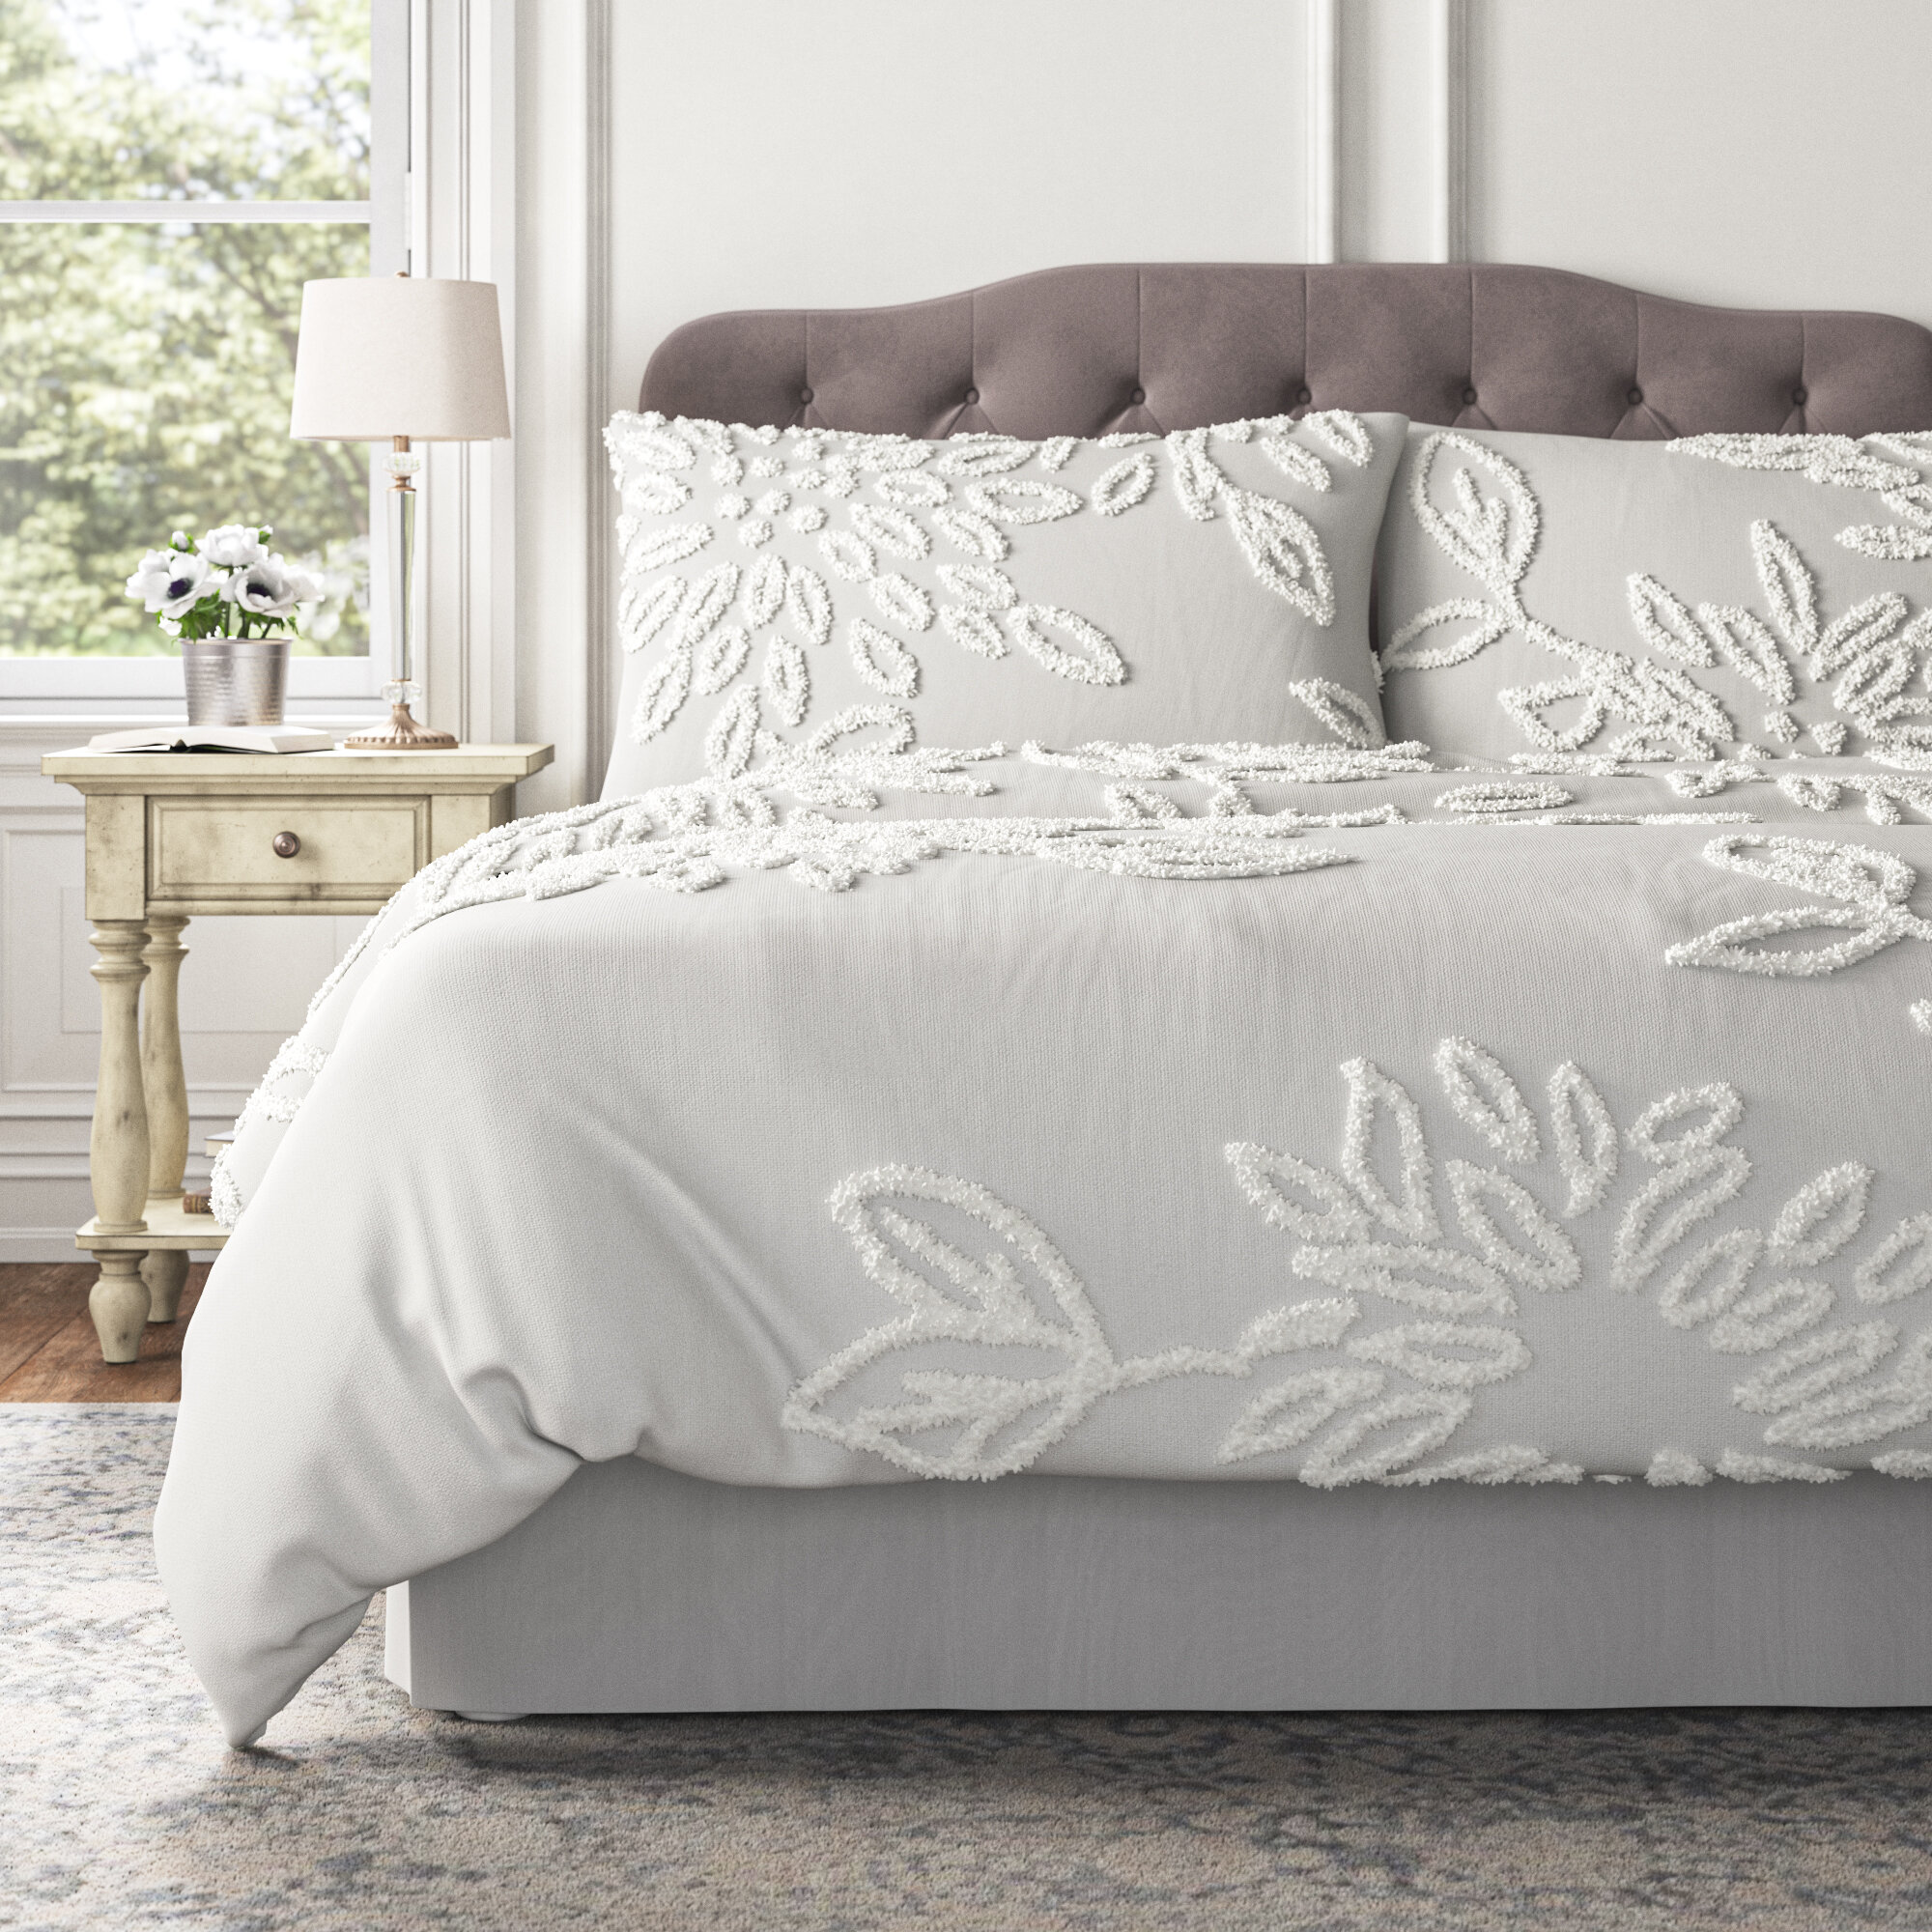 Kelly Clarkson Home Opera 3 Piece Tufted Cotton Duvet Cover Set Reviews Wayfair